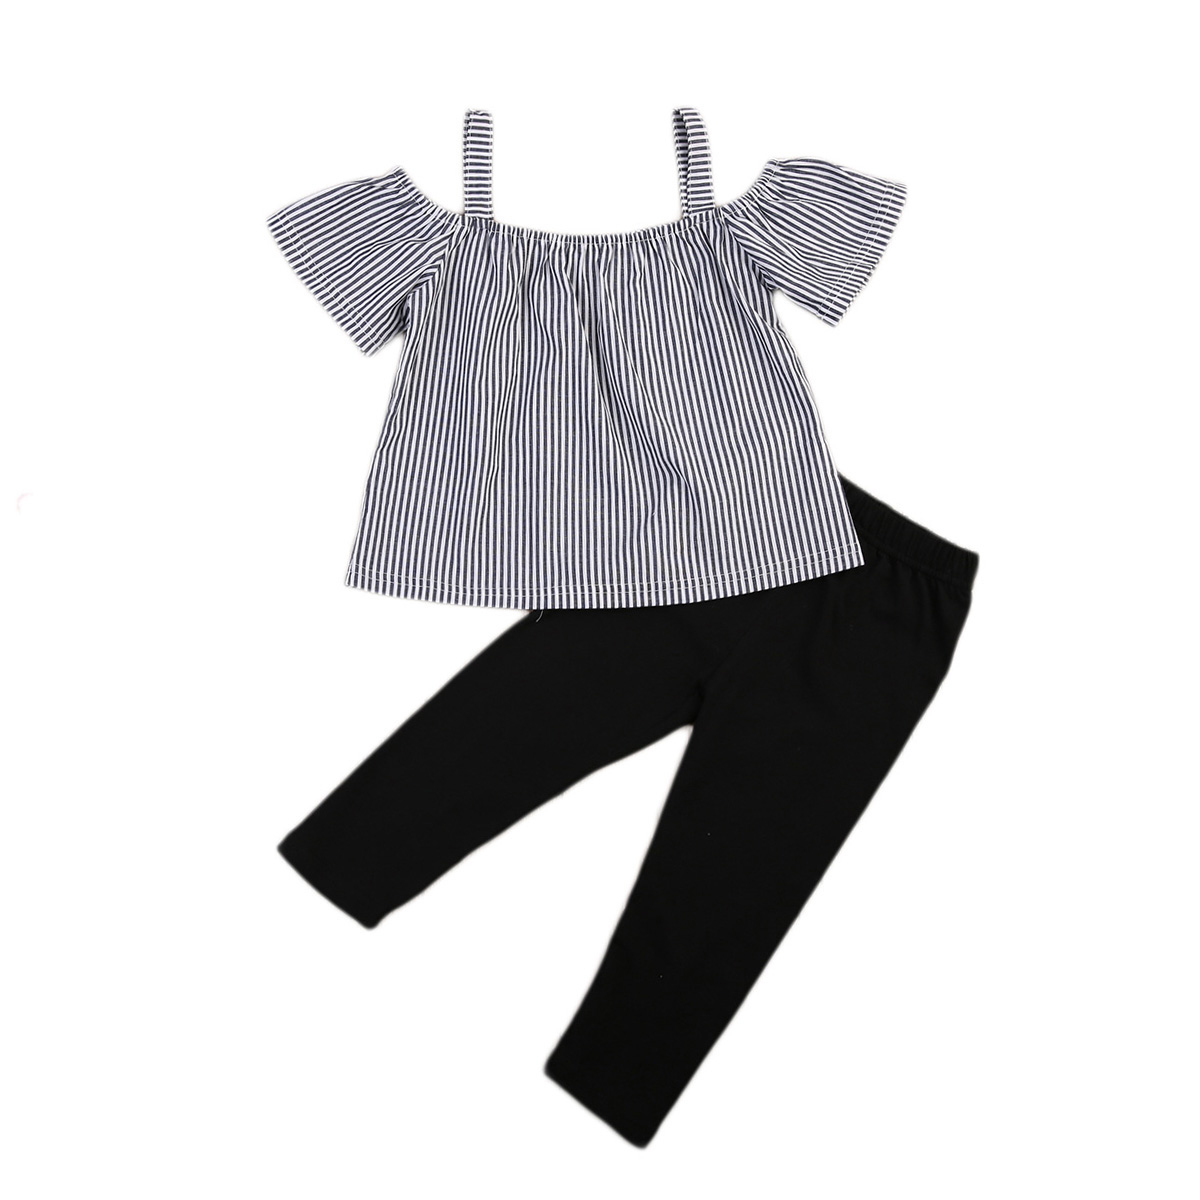 Ripped Holes Skinny Long Pants Outfits Clothes Set Toddler Kid Baby Girl Long Sleeve Off Shoulder Floral Tops